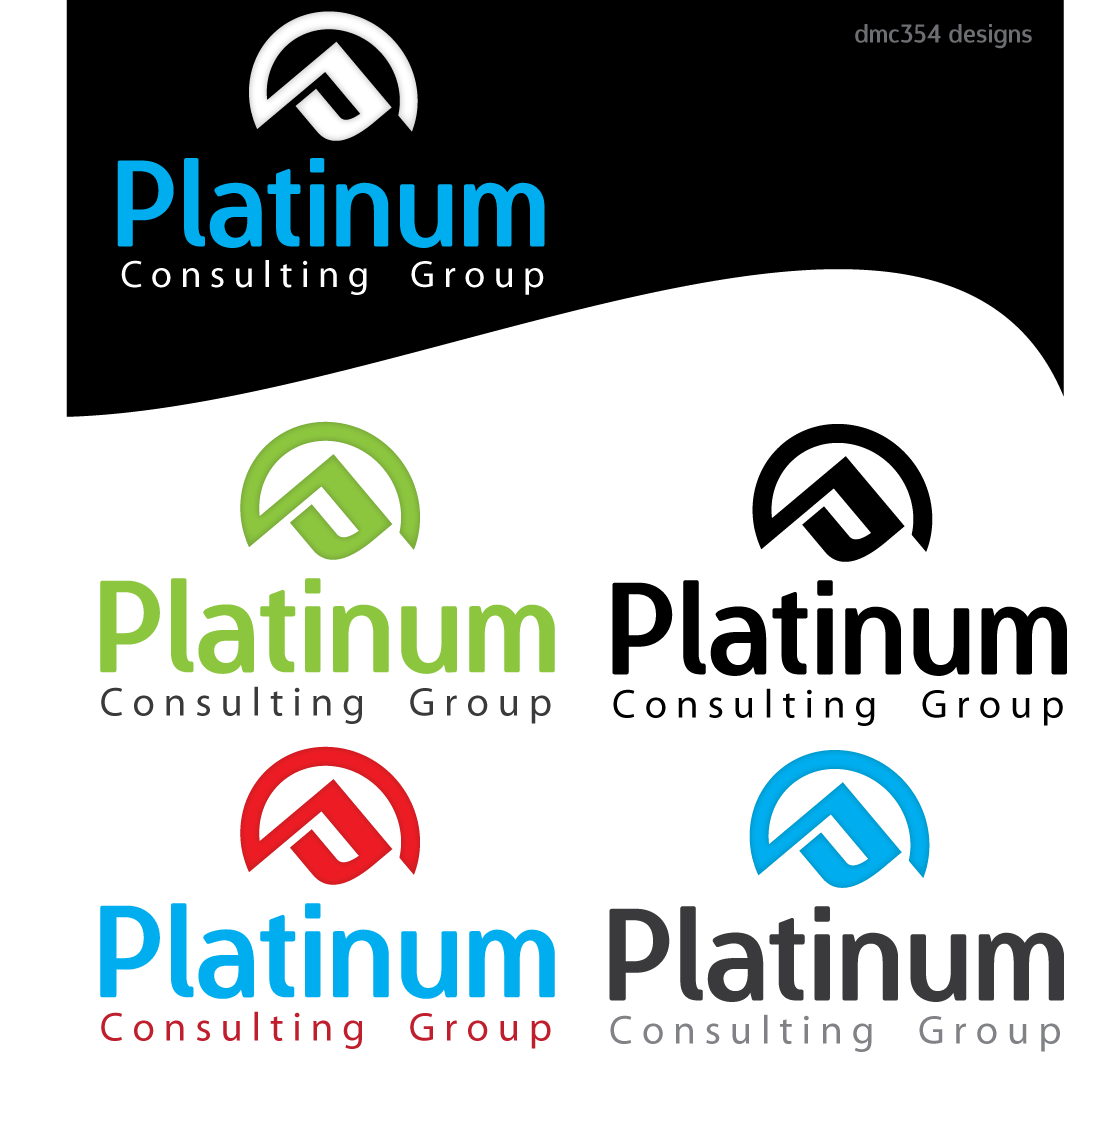 Logo Design by 354studio - Entry No. 39 in the Logo Design Contest Captivating Logo Design for Platinum Consulting Group.